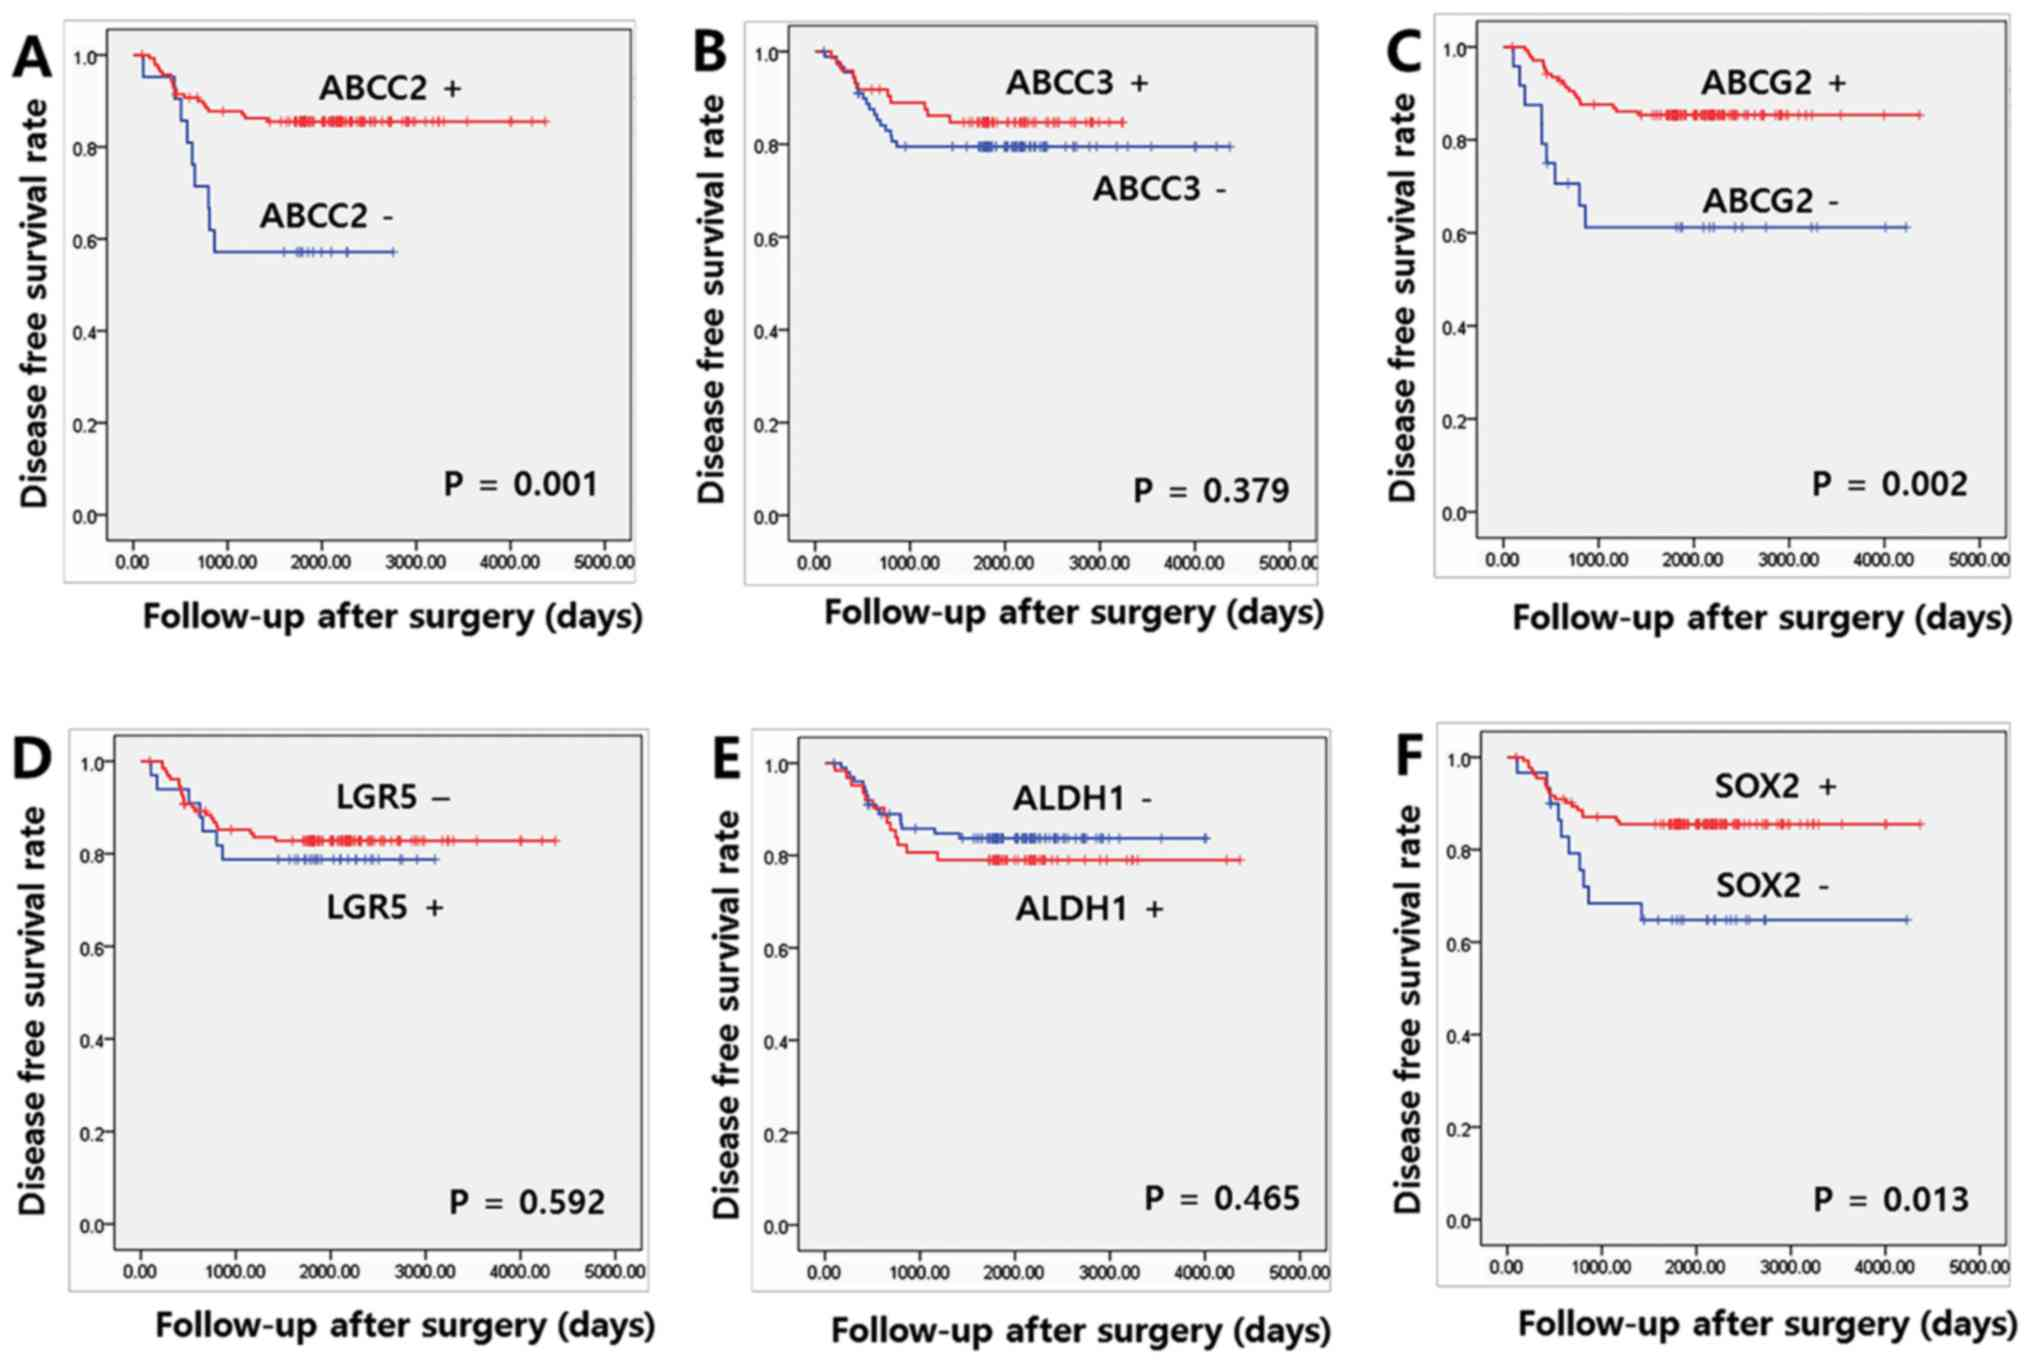 Prognostic Implication Of Abc Transporters And Cancer Stem Cell Markers In Patients With Stage Iii Colon Cancer Receiving Adjuvant Folfox 4 Chemotherapy